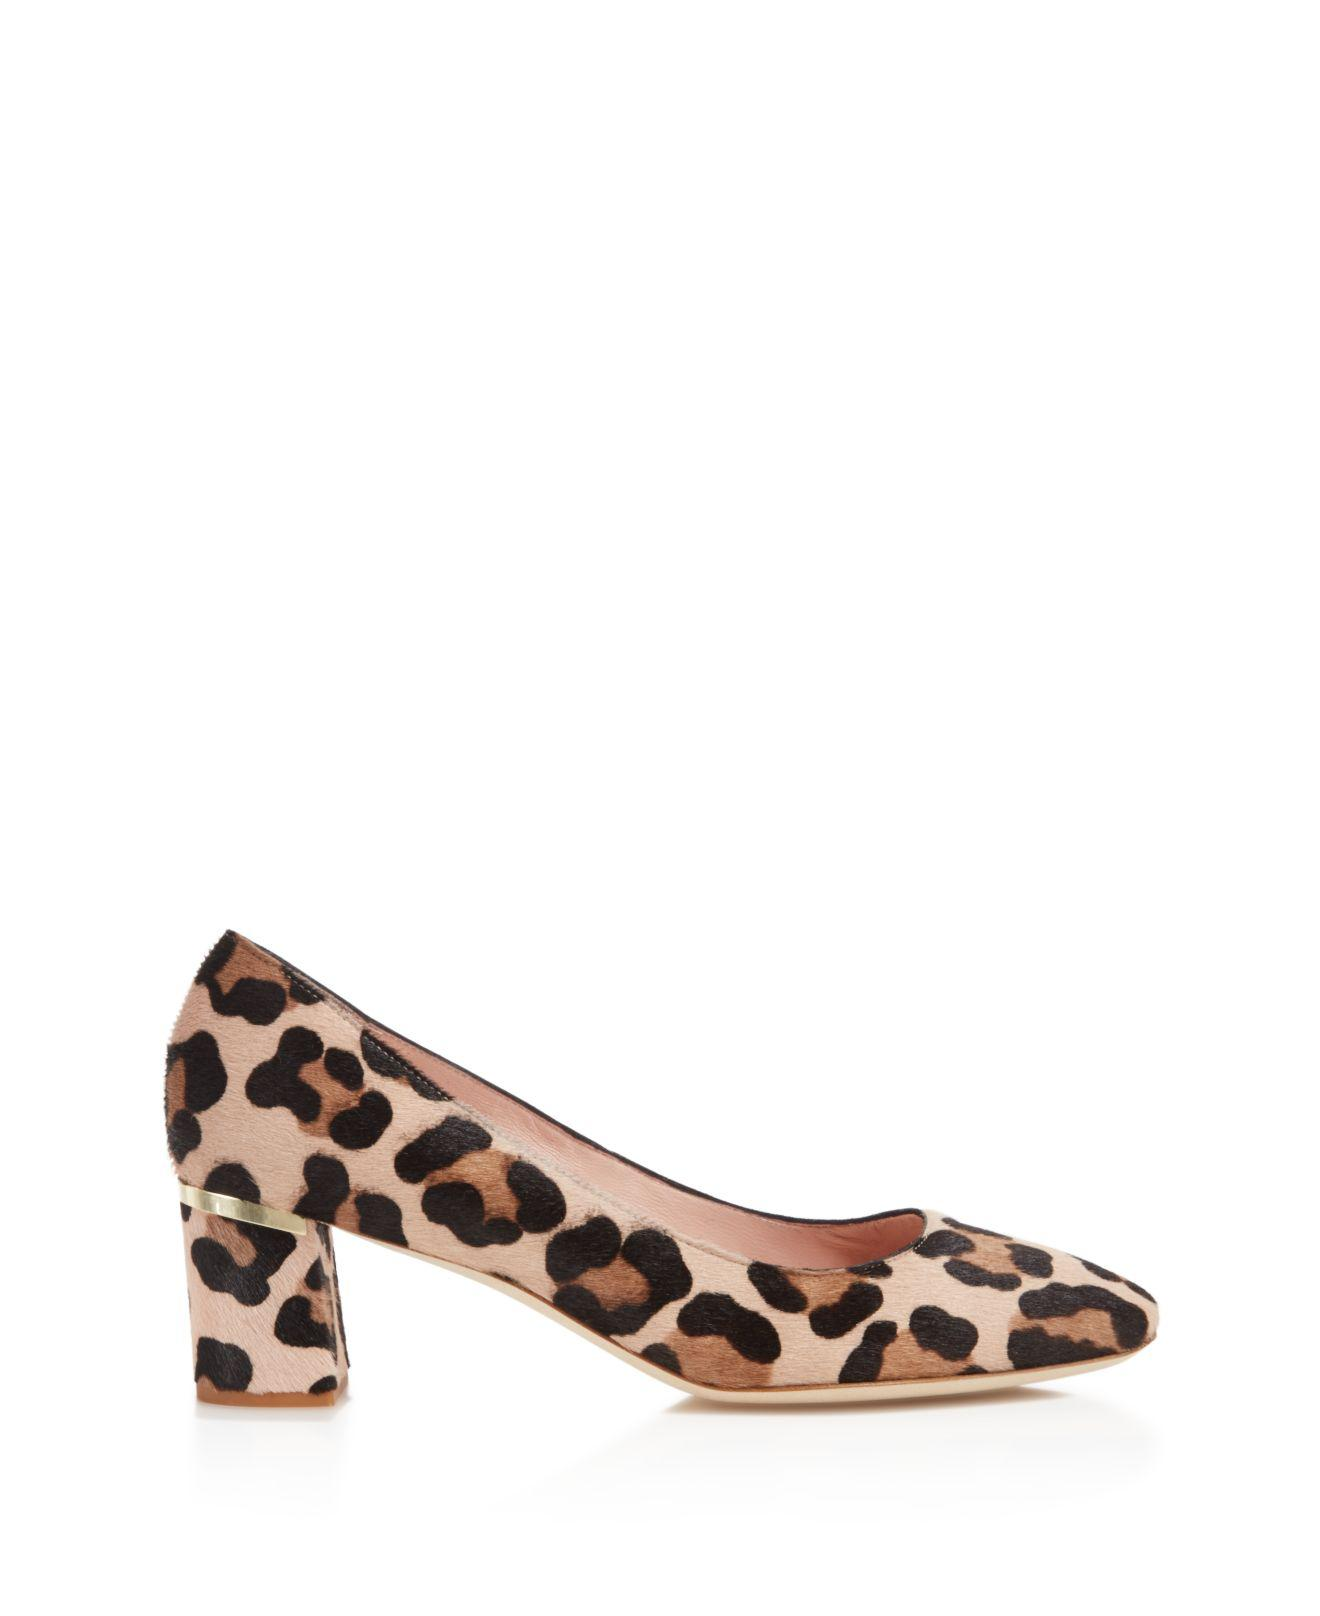 6aaca44cdfef Lyst - Kate Spade Dolores Too Leopard Print Calf Hair Pumps in Brown